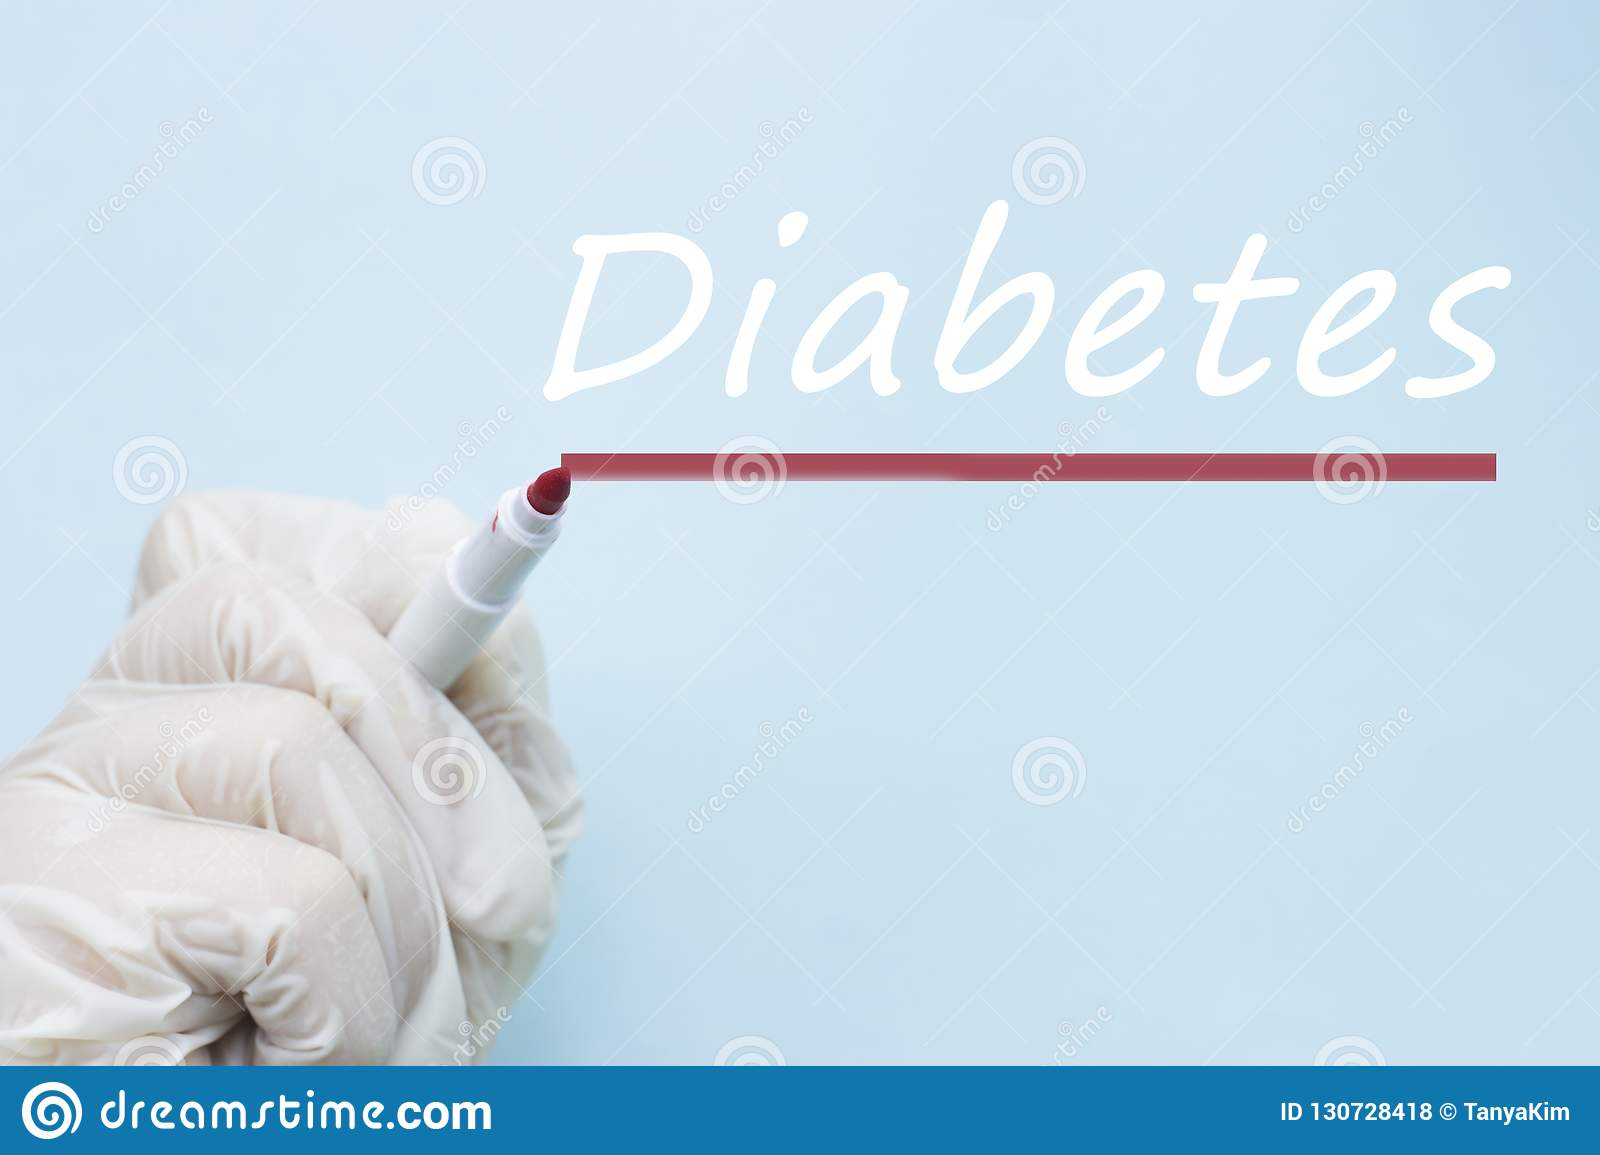 Inscription Diabetes and hand in medical glove on blue background, World Diabetes Day, medical concept